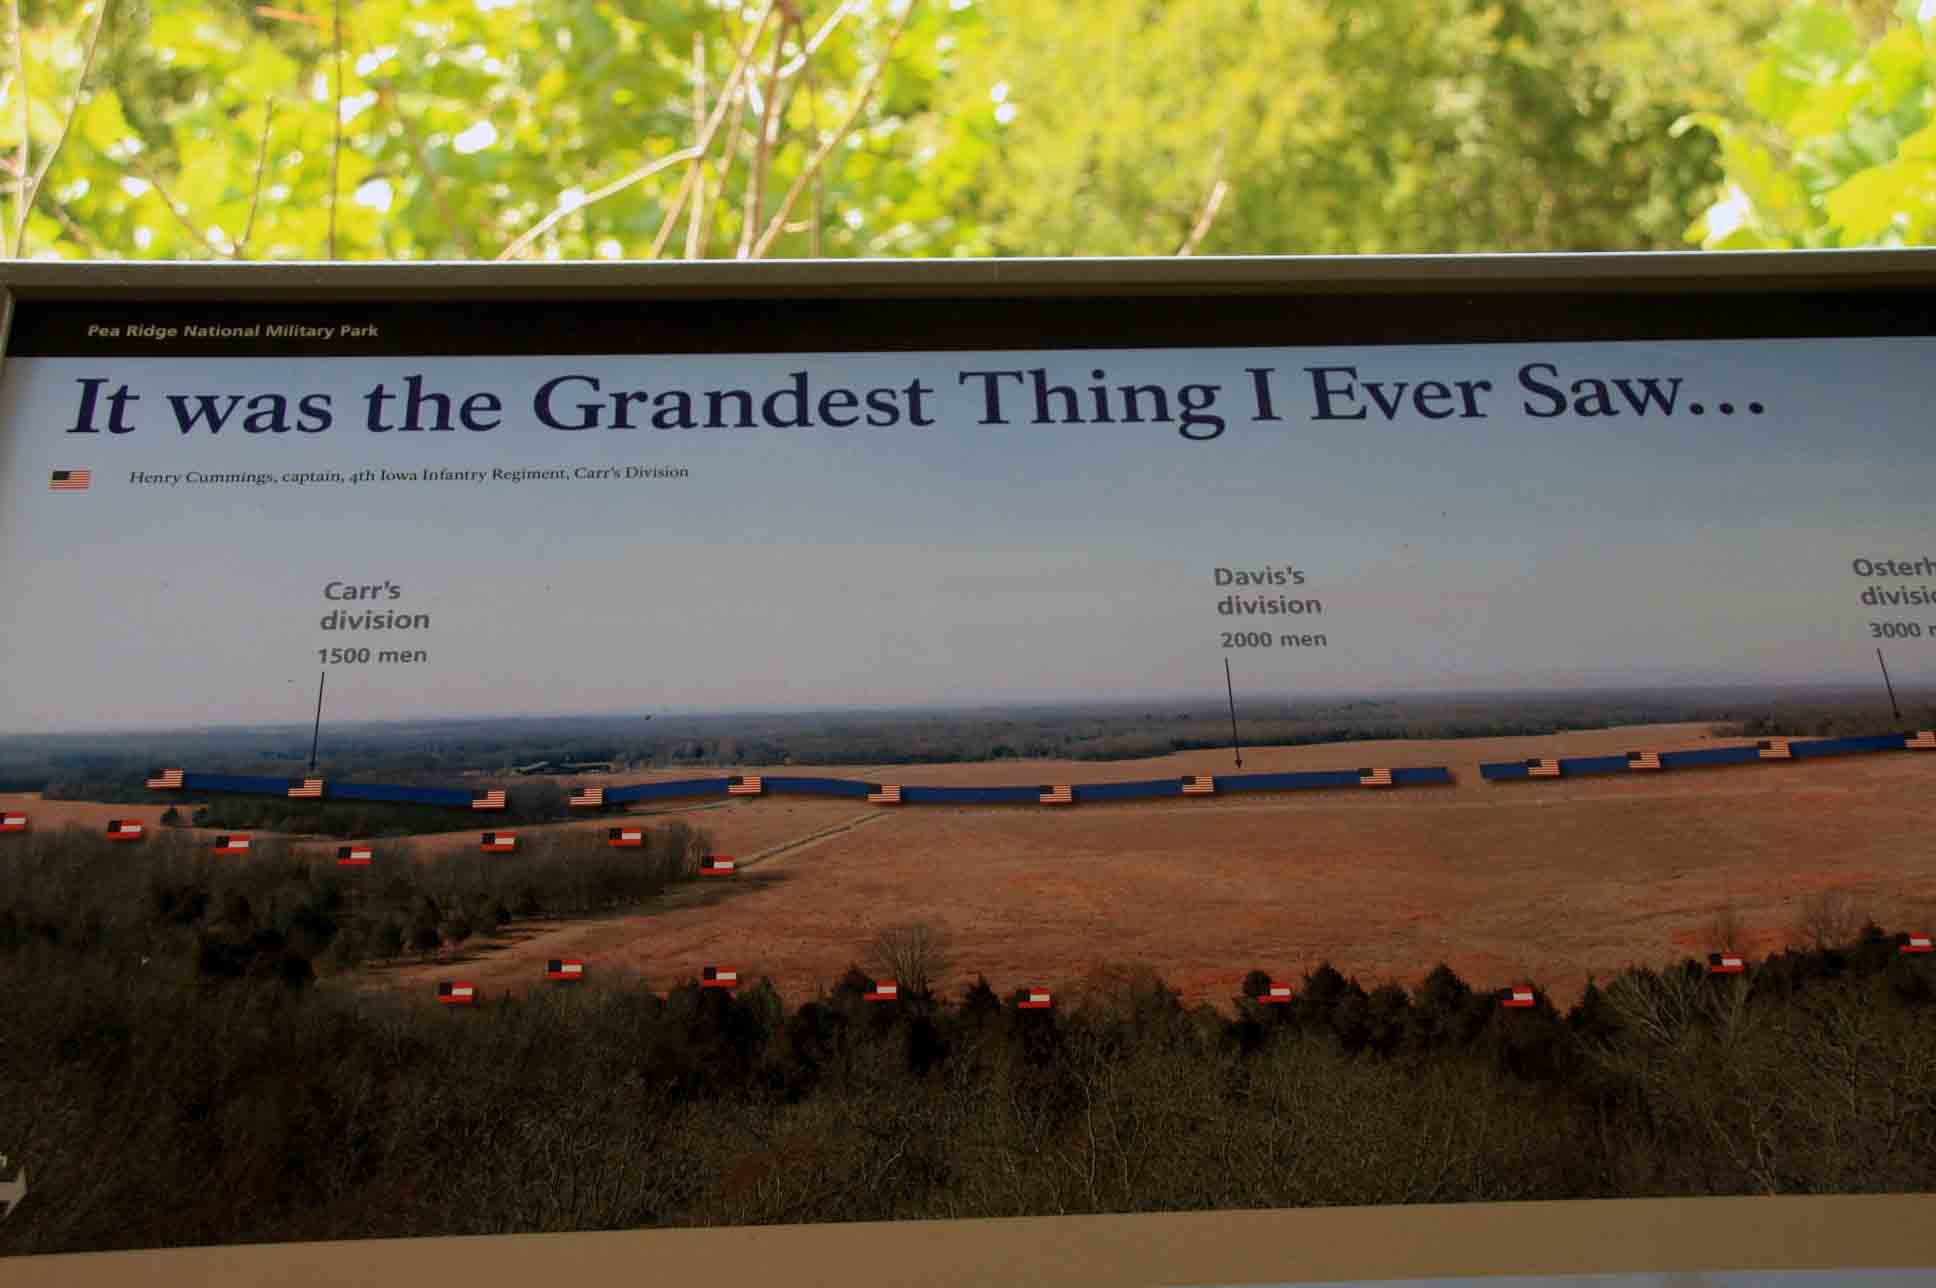 It was the Grandest Thing I Ever Saw..., click photo to enlarge.